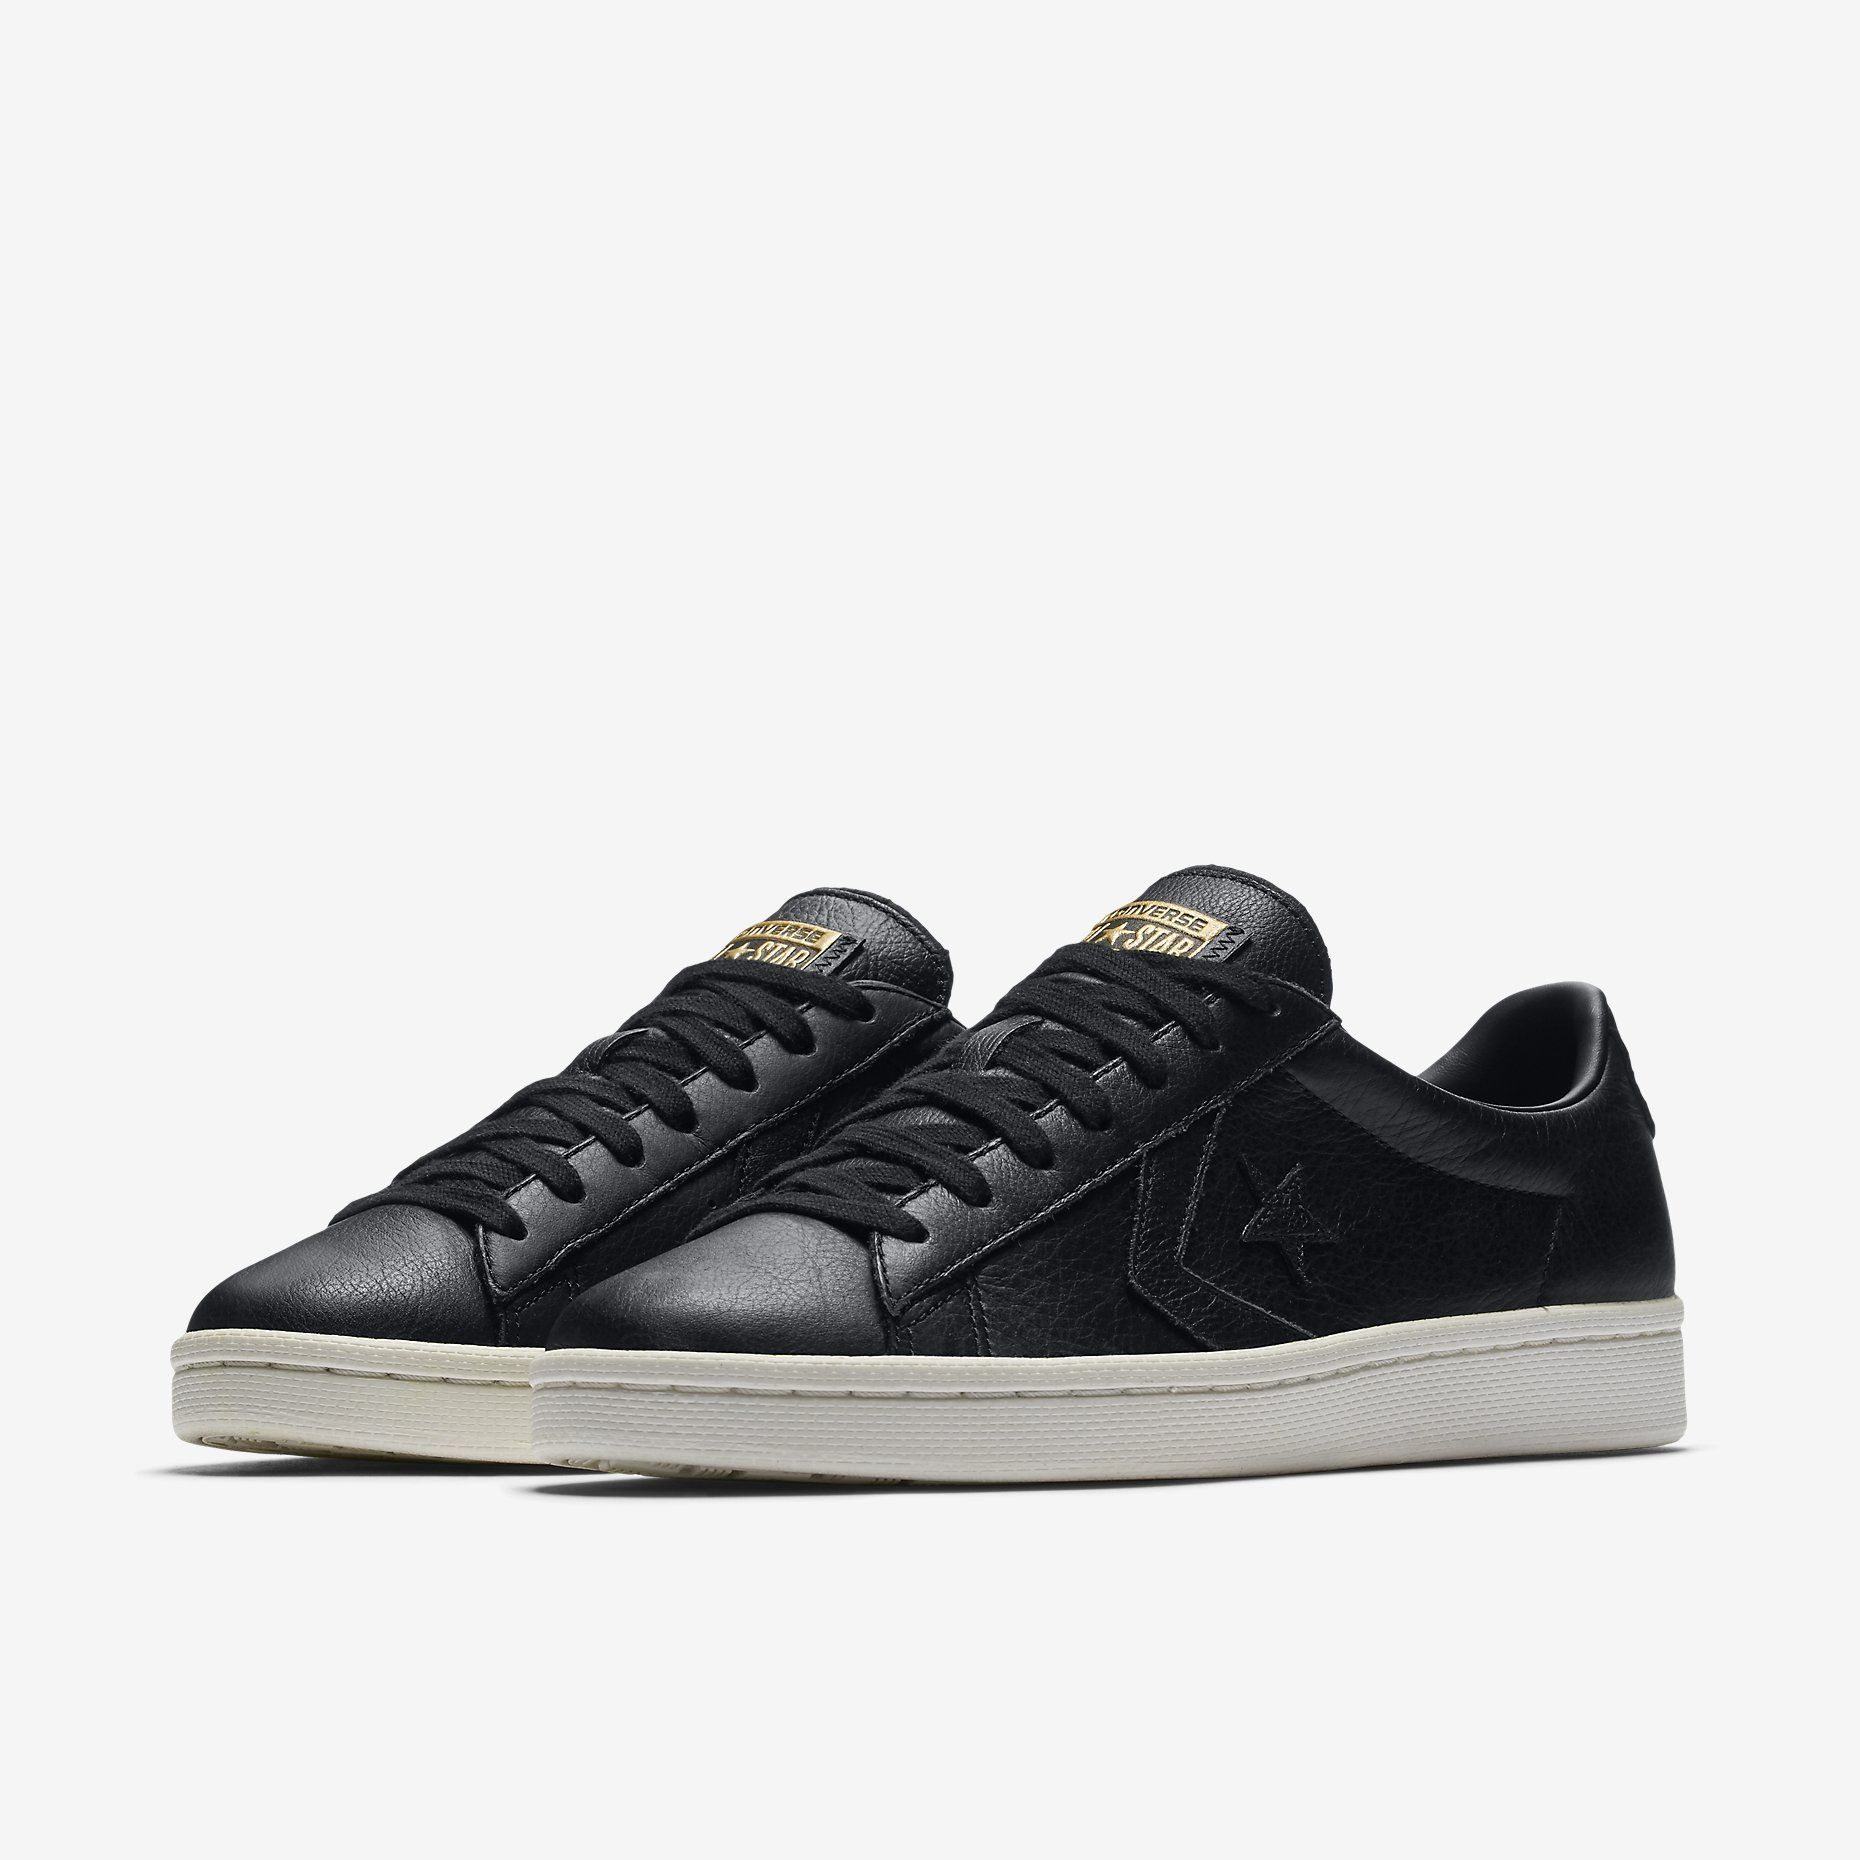 new products cc8d3 c866d Converse Pro Leather Low Top in black via Nike